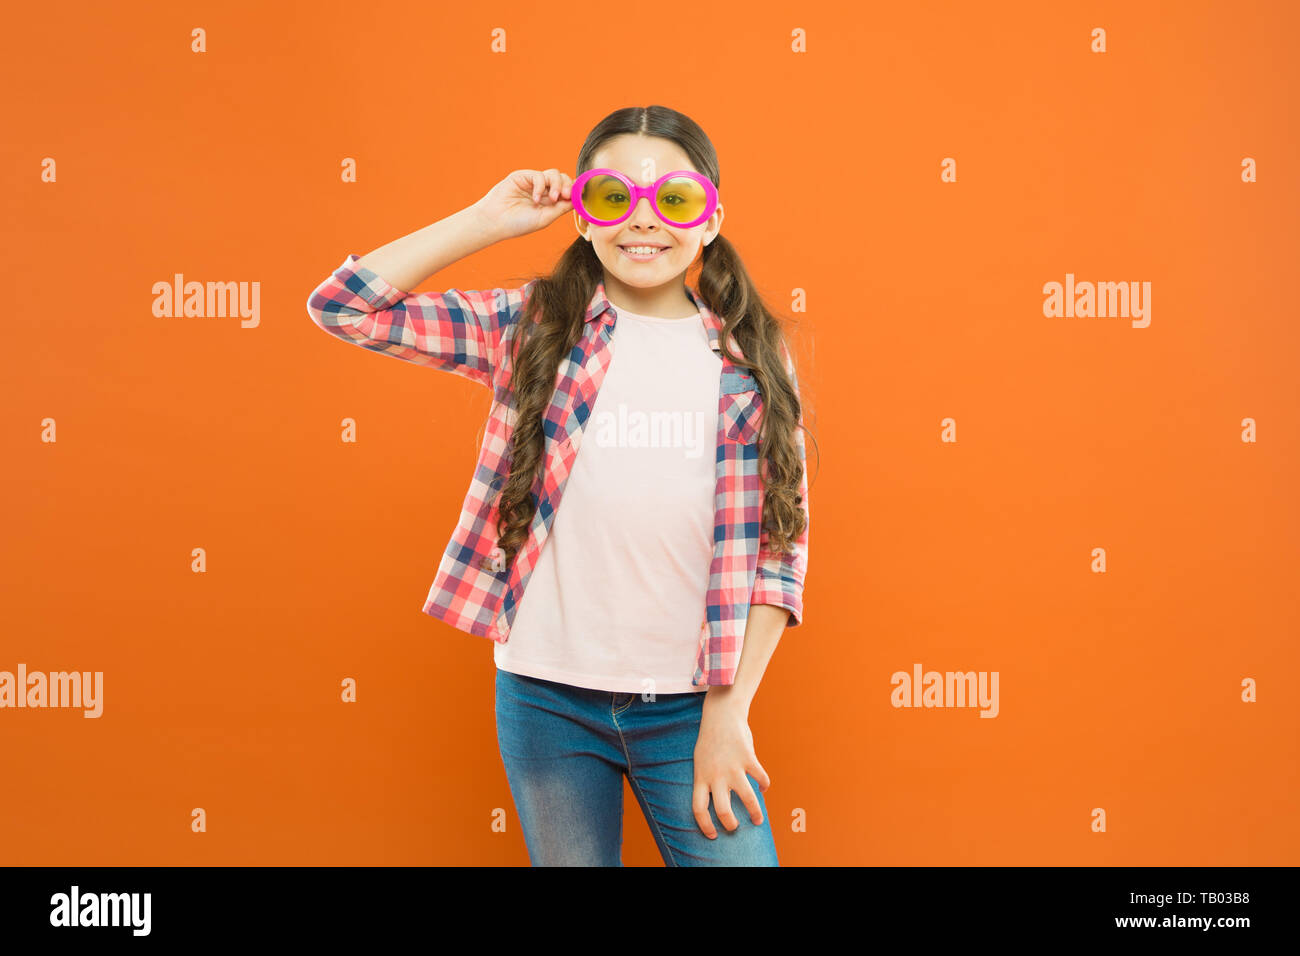 Look well and feel beautiful. Adorable girl with fashionable look on orange background. Little child having geeky look in fancy eyeglasses. Beauty look of small fashion model. - Stock Image